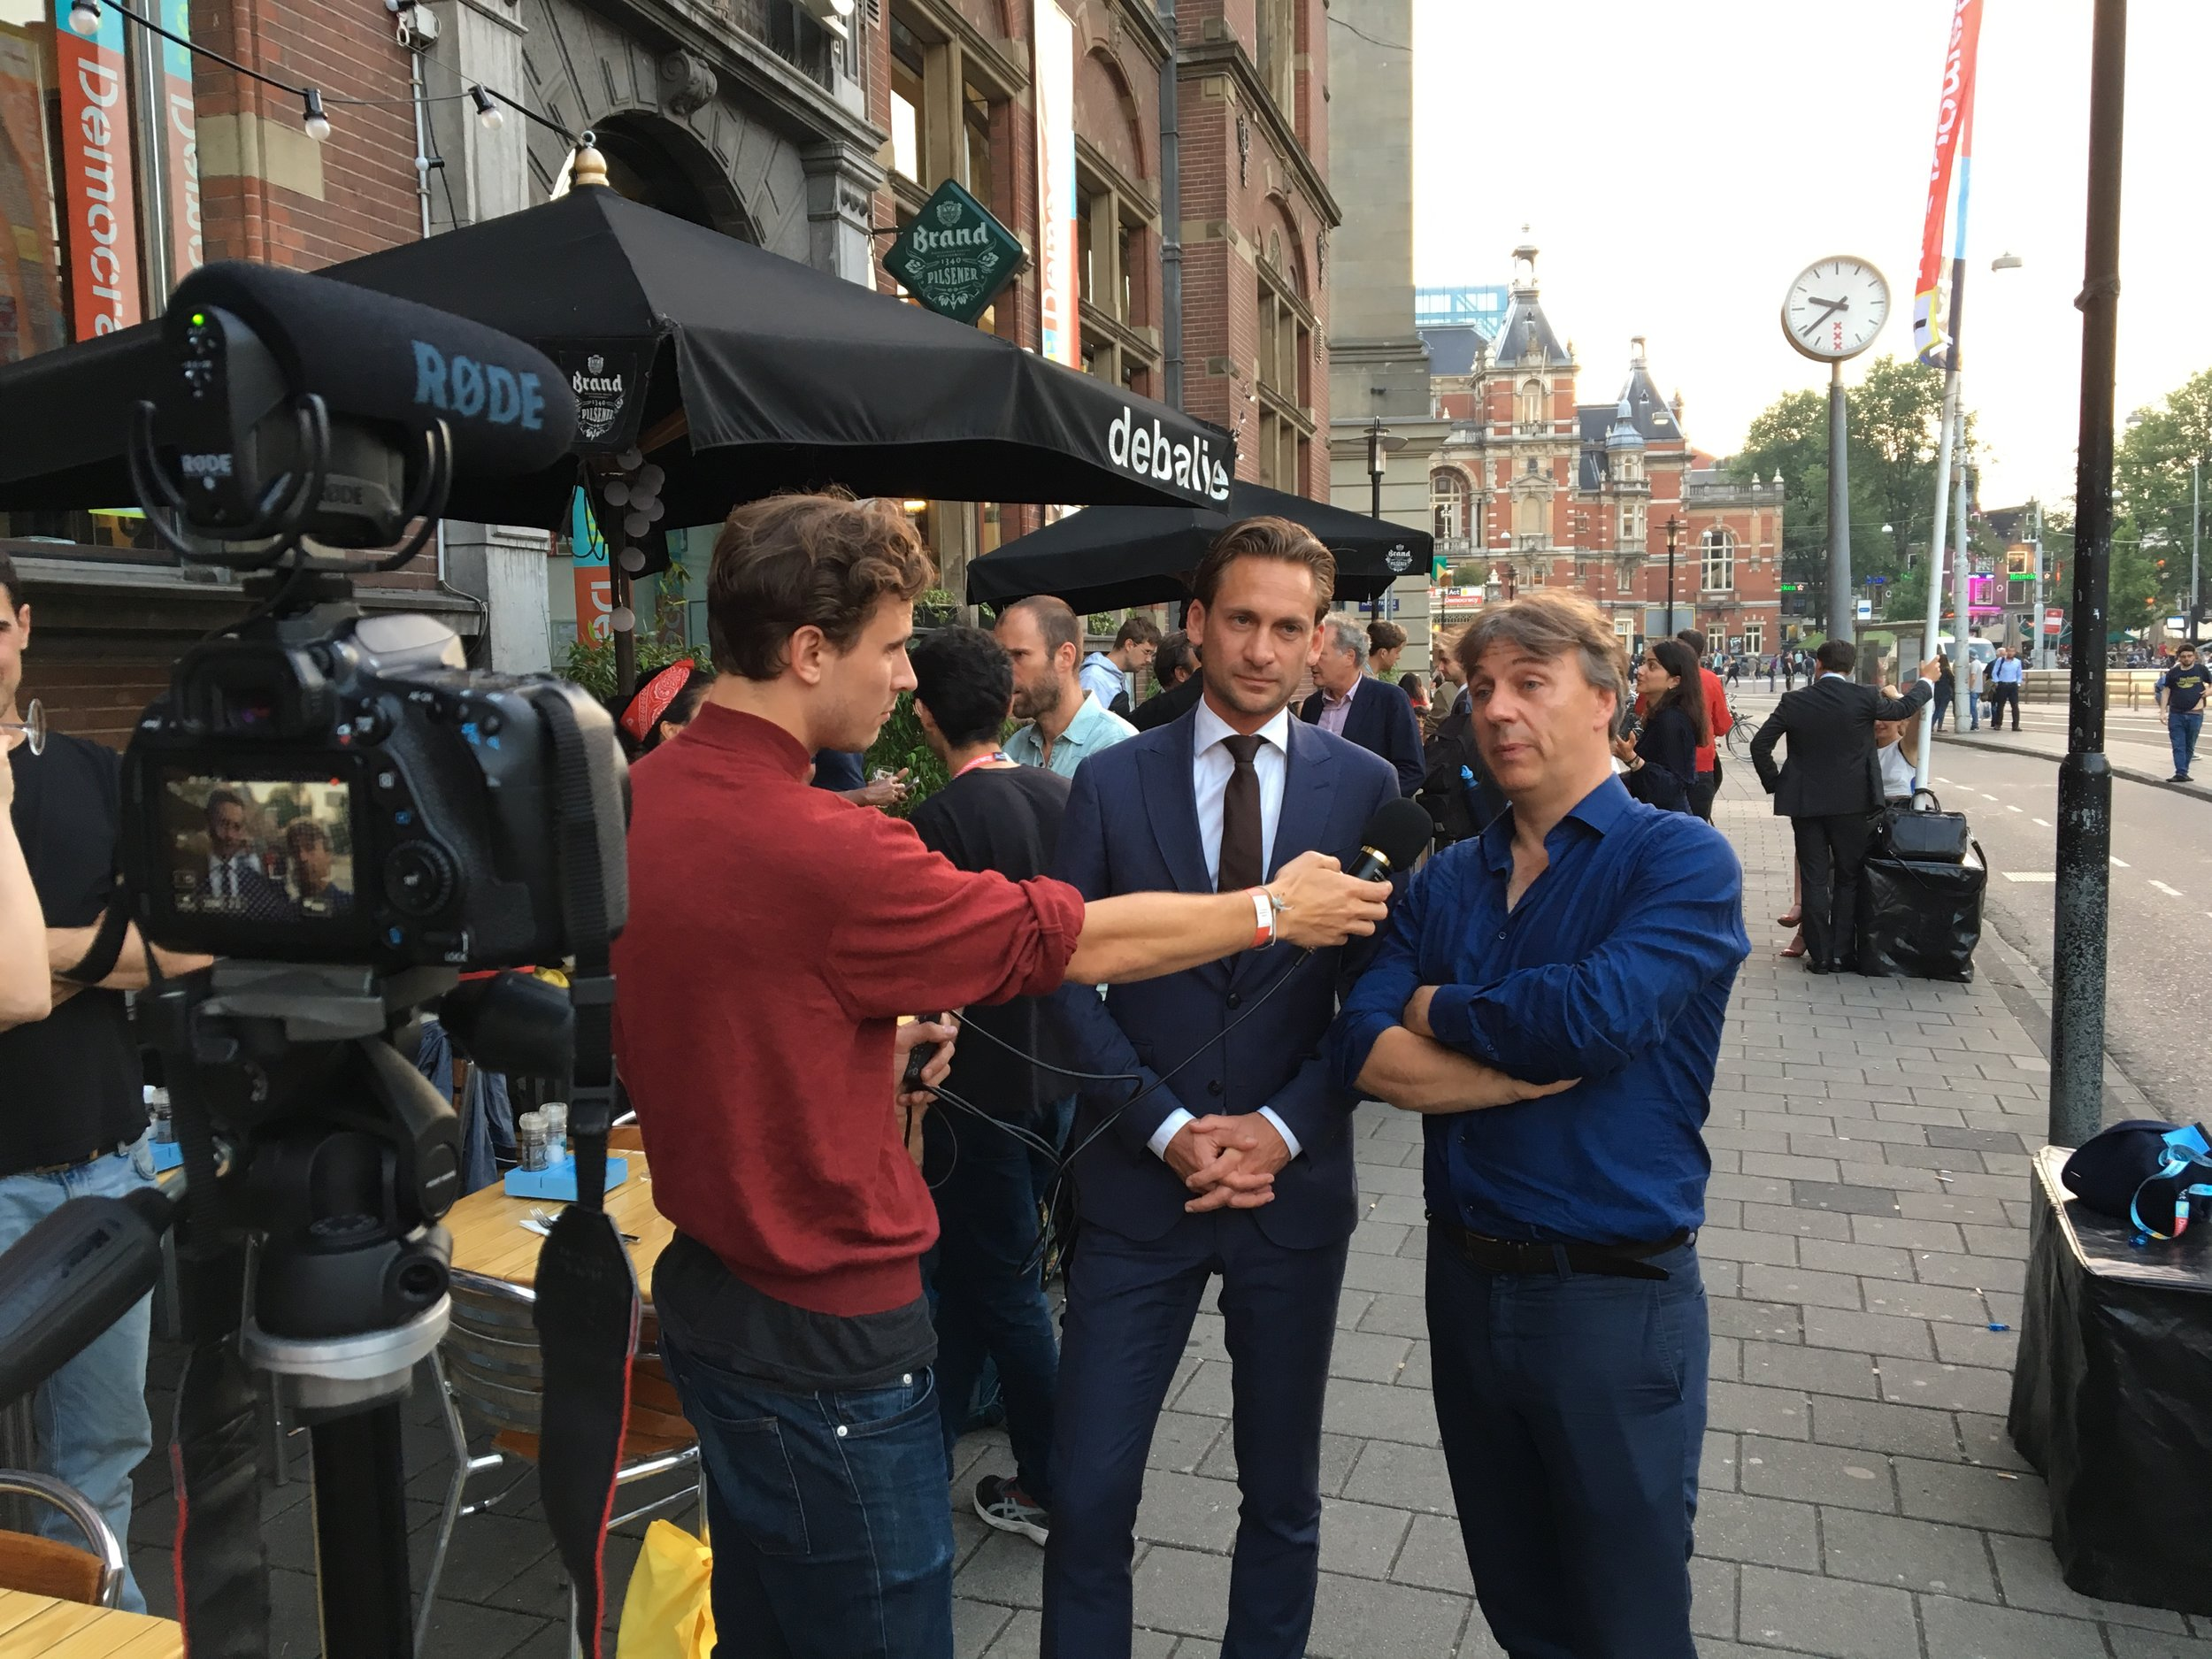 Our very own Kyrill Hartog interviewing Europe-guru  Mathieu Segers  and organizer of the event  Yoeri Albrecht .